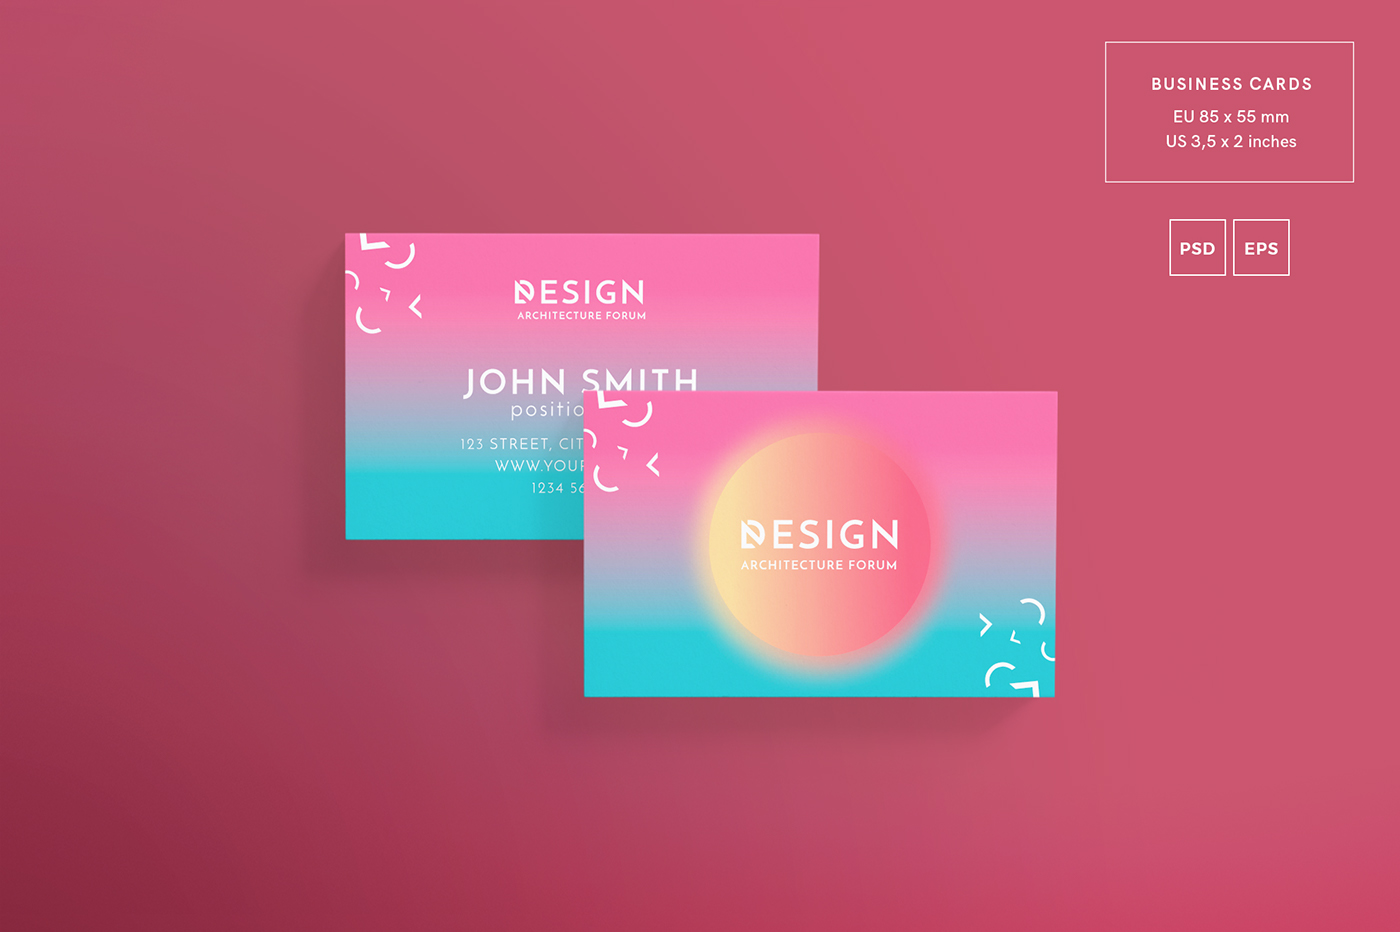 Architecture forum modern and creative design templates on behance super clean and professionally designed illustrator document template easy to use and customise layered photoshop template eps psd jpg files reheart Image collections